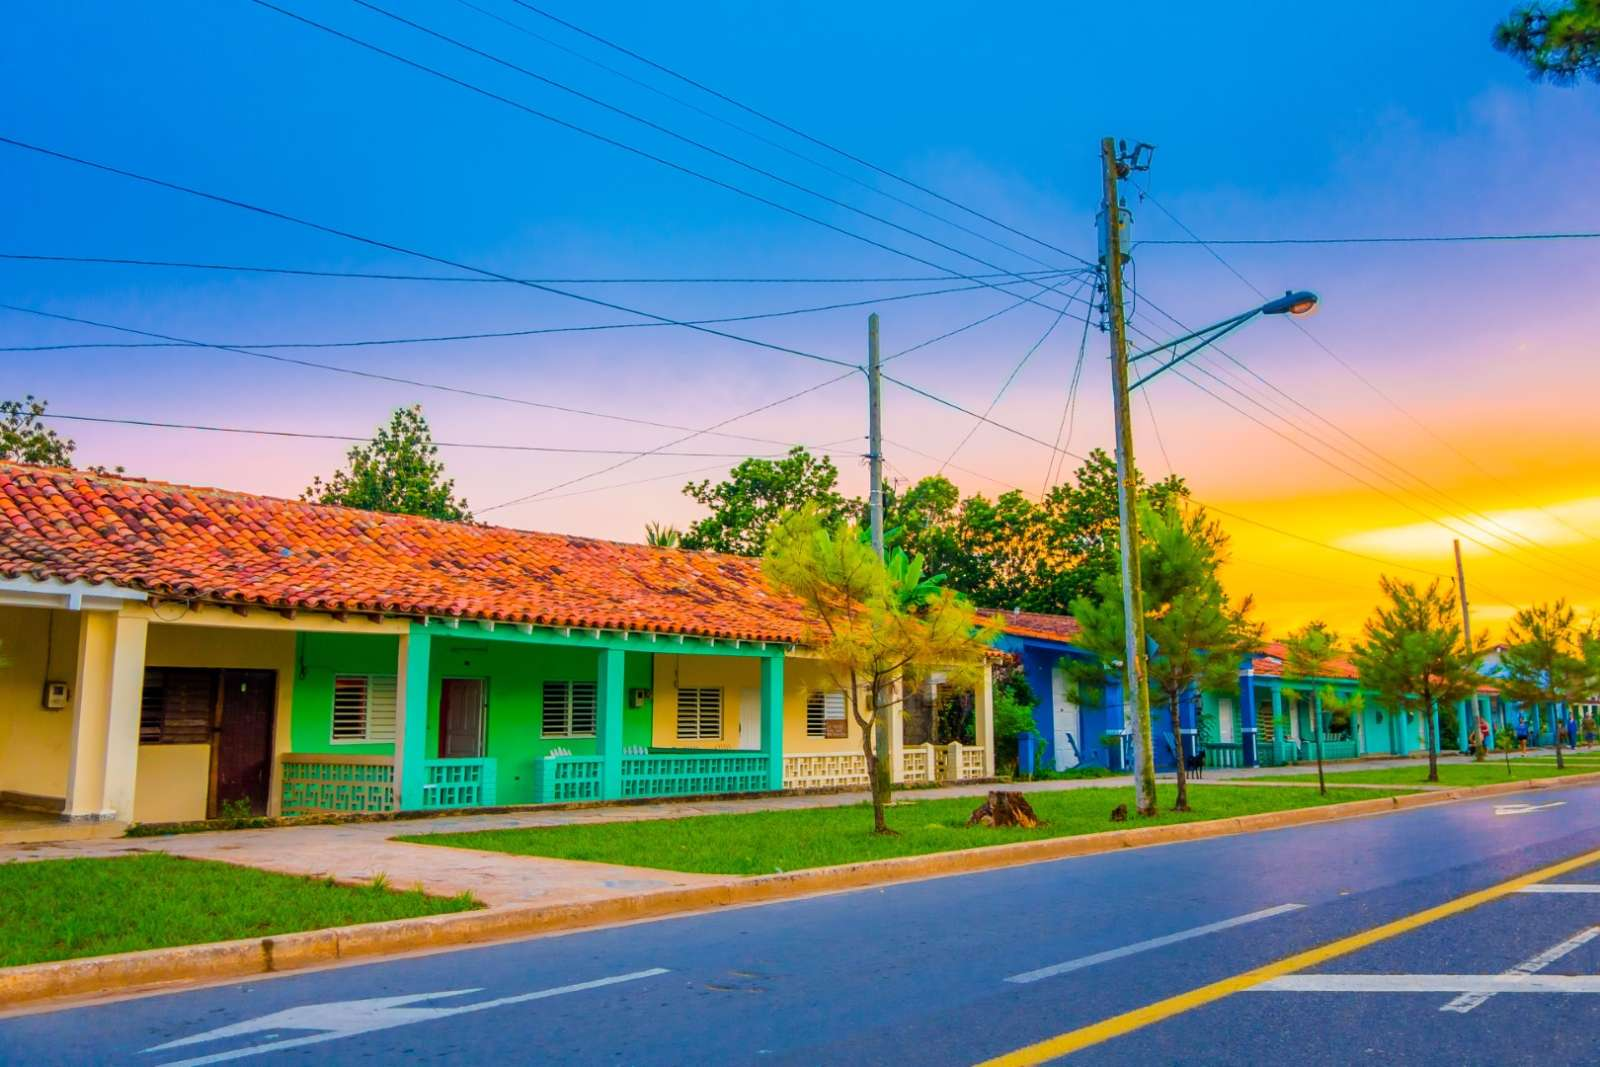 Quiet Vinales street in early morning